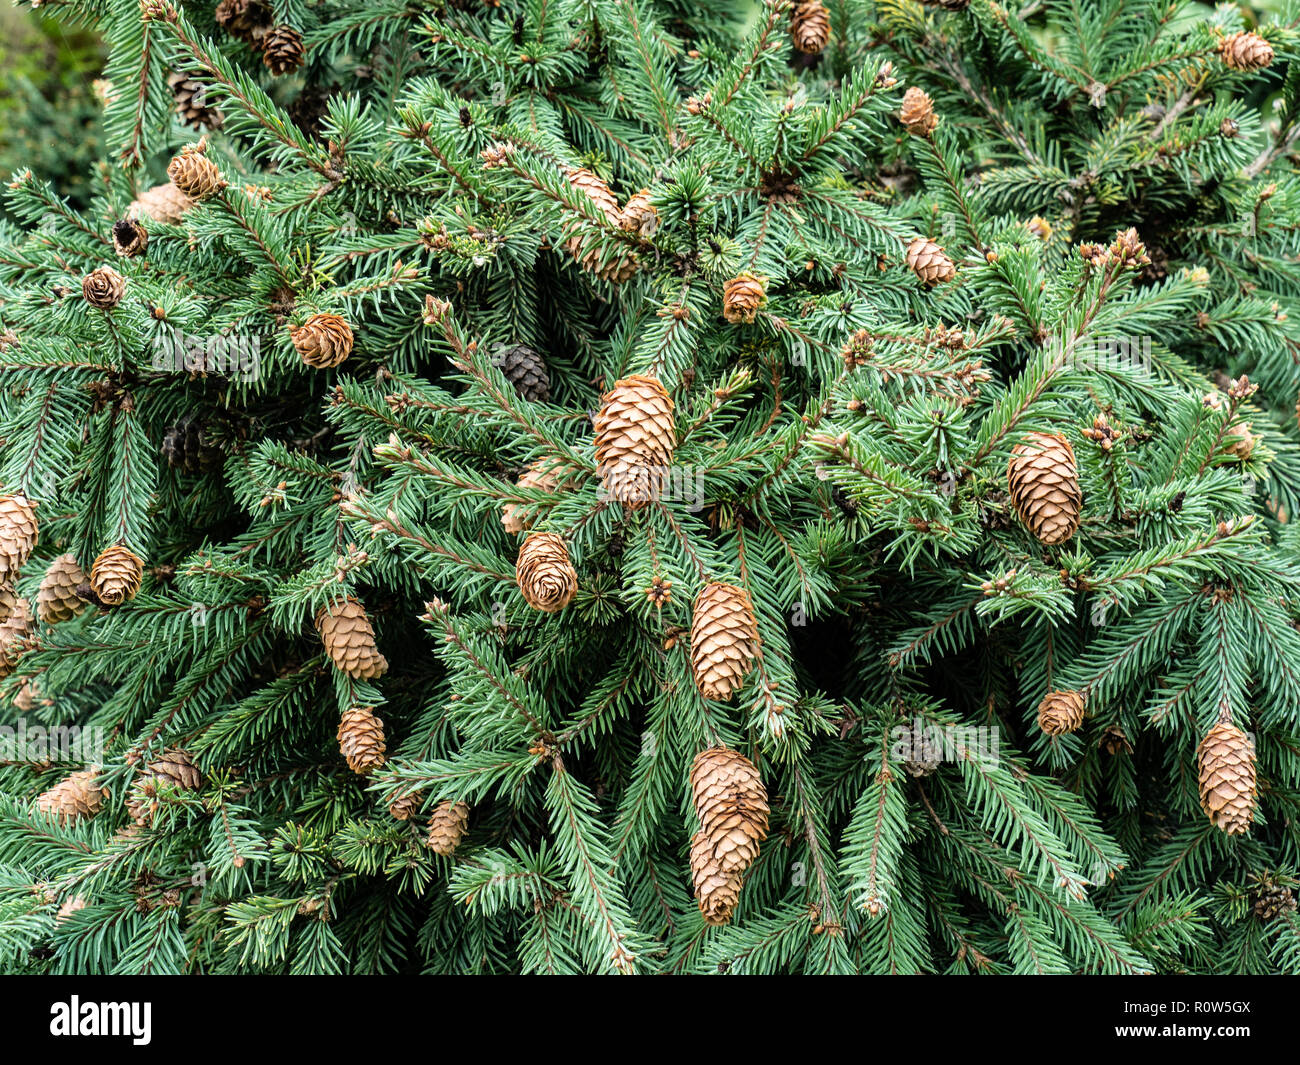 A close up of the foliage and cones of Picea abies Pusch - Stock Image